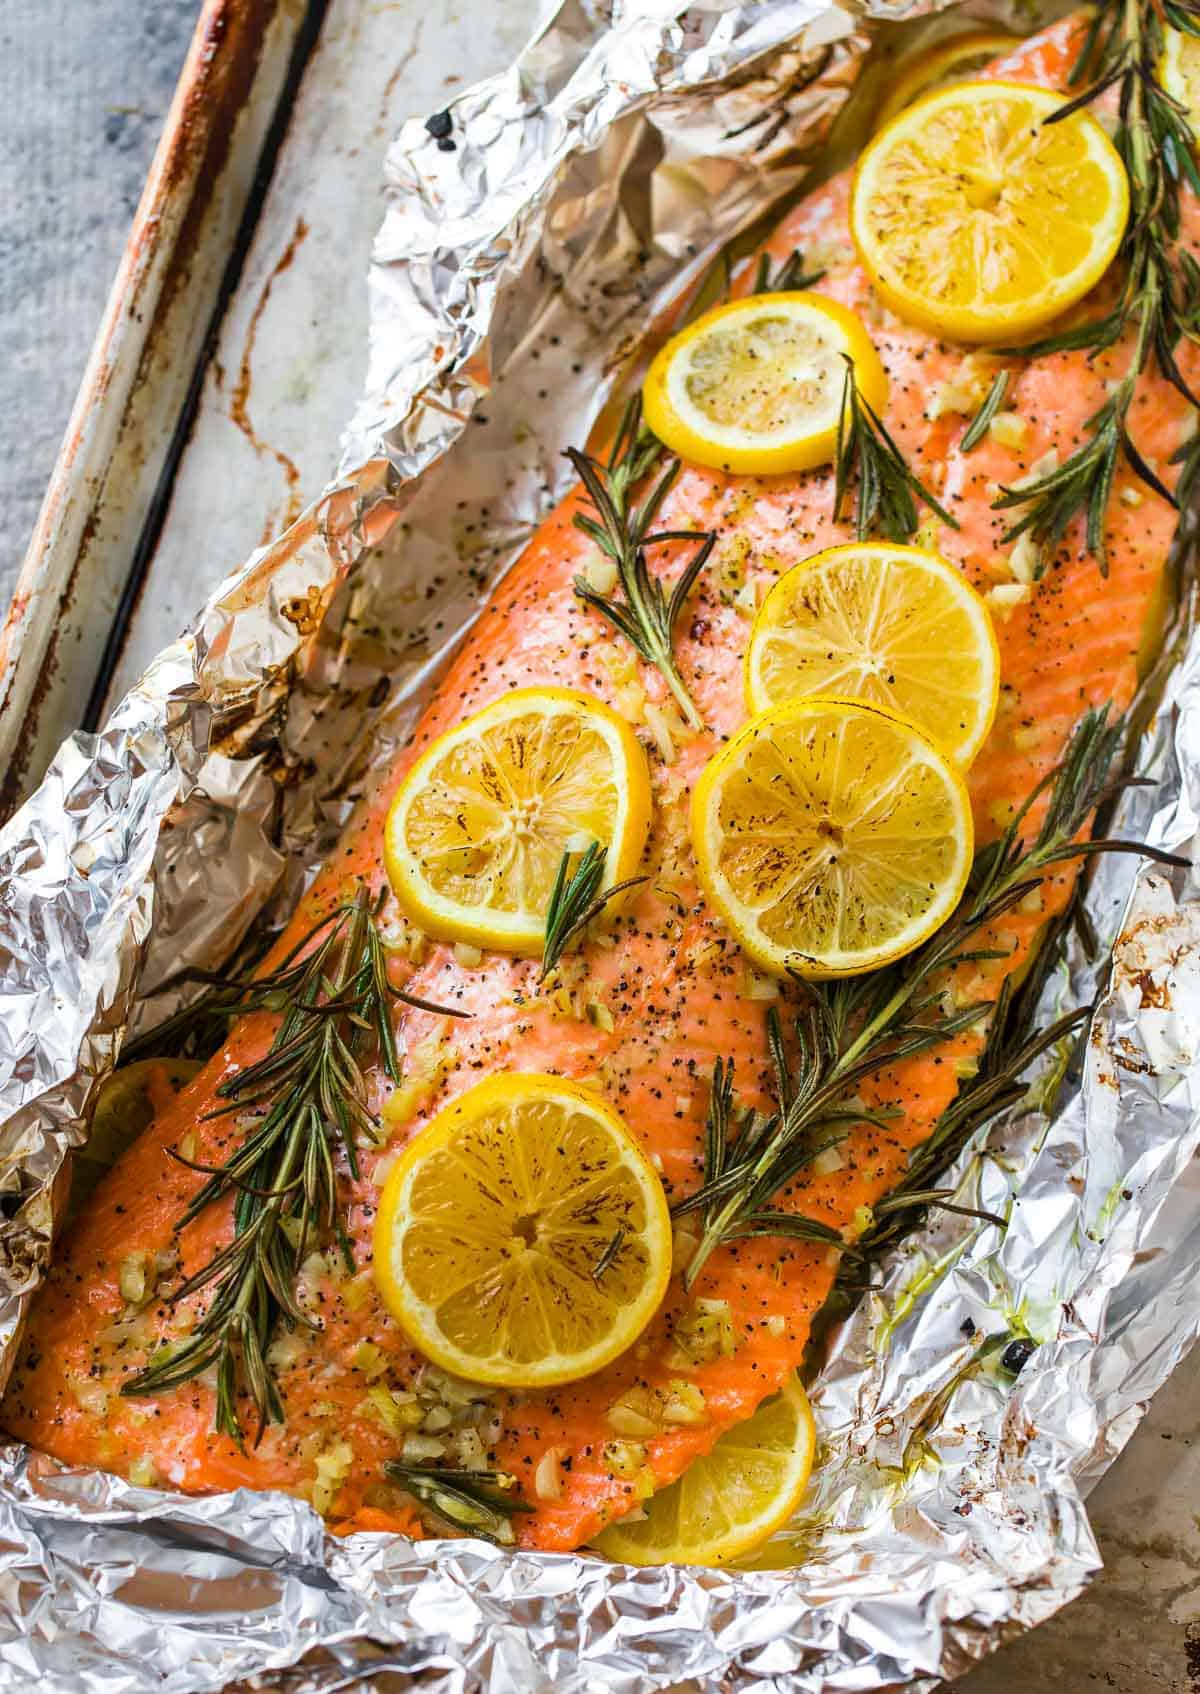 How Long to Cook Salmon in the Oven